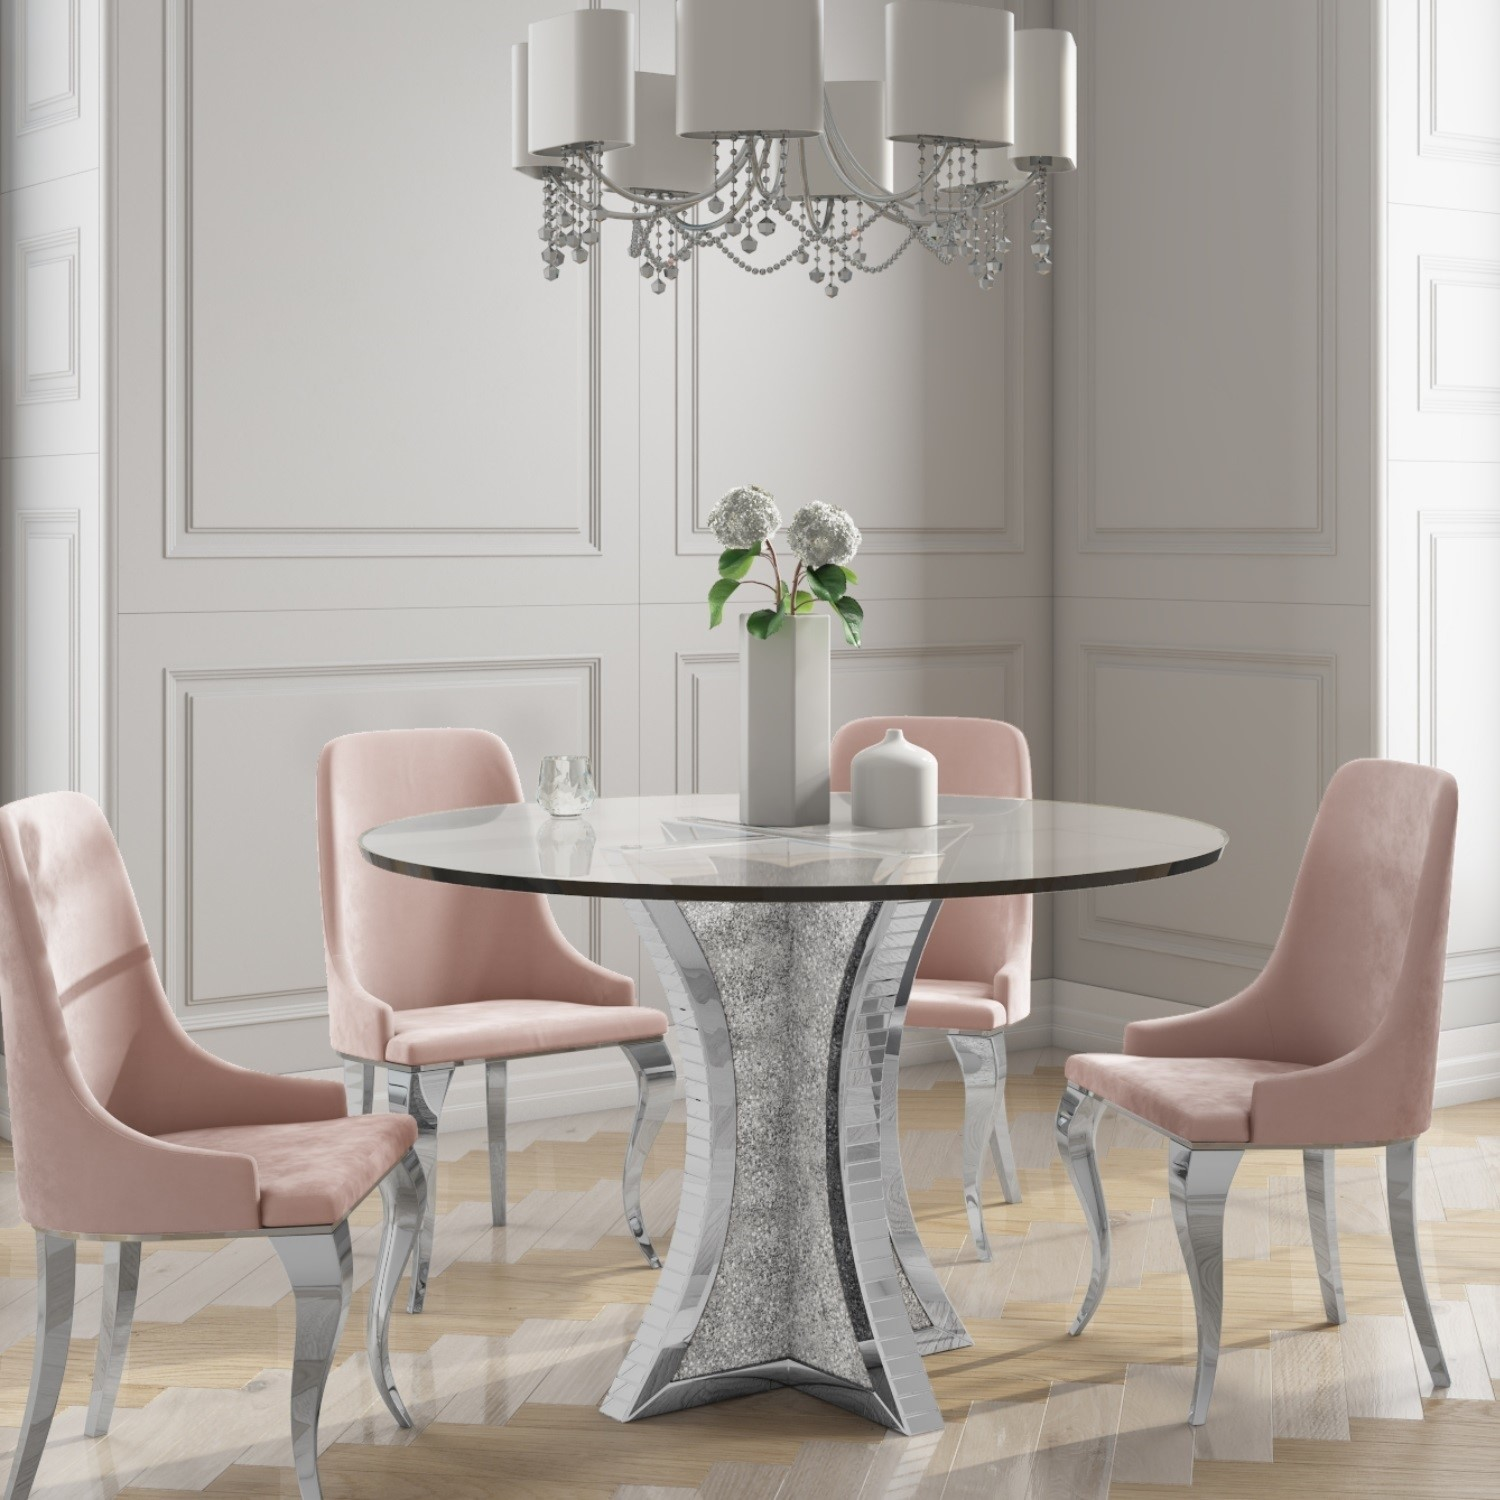 Details about Round Mirrored Dining Table & 9 Chairs in Pink Velvet    Angelic BUN/JAD9/9